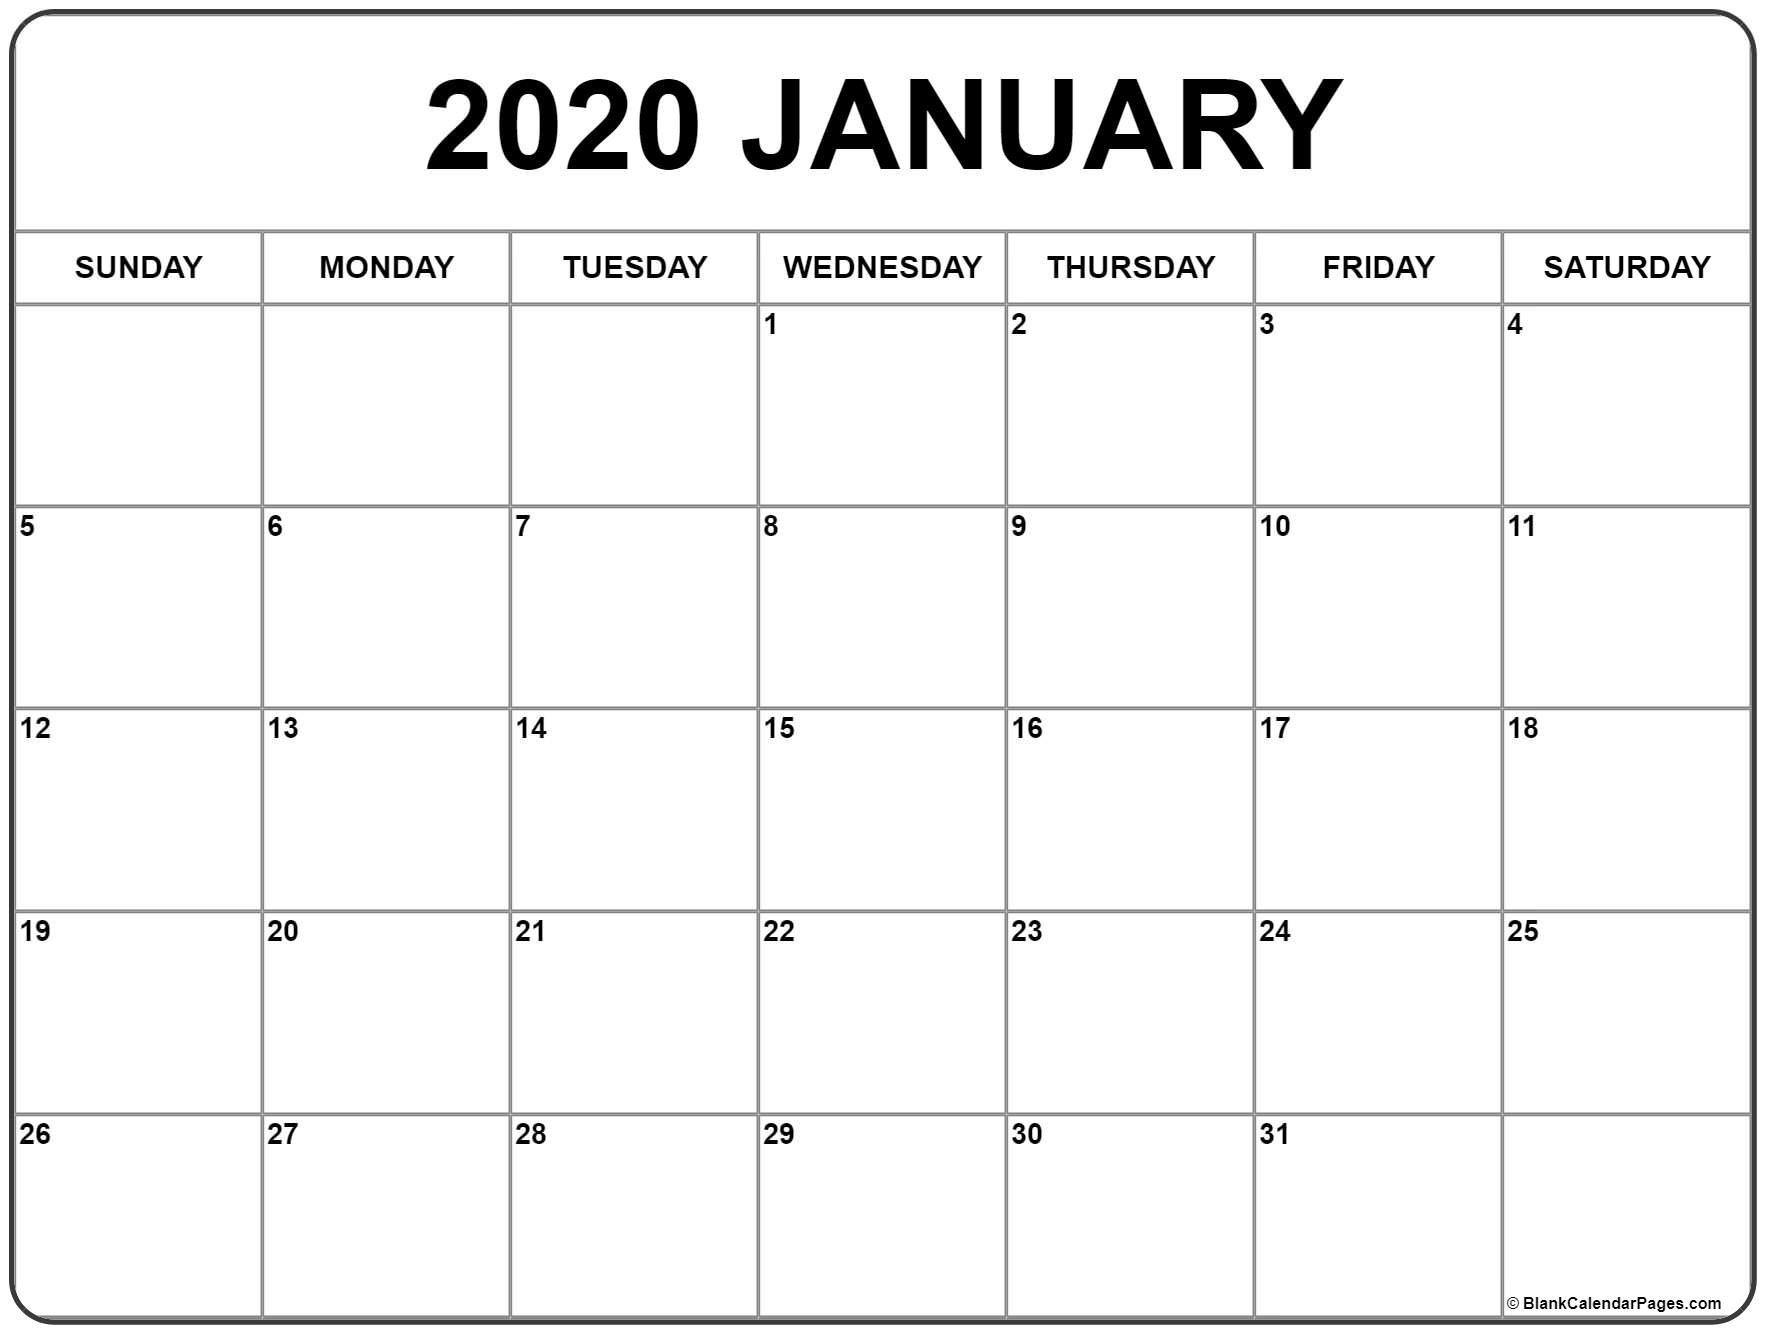 January 2020 Calendar | Free Printable Monthly Calendars-Printable Calendar For January 2020